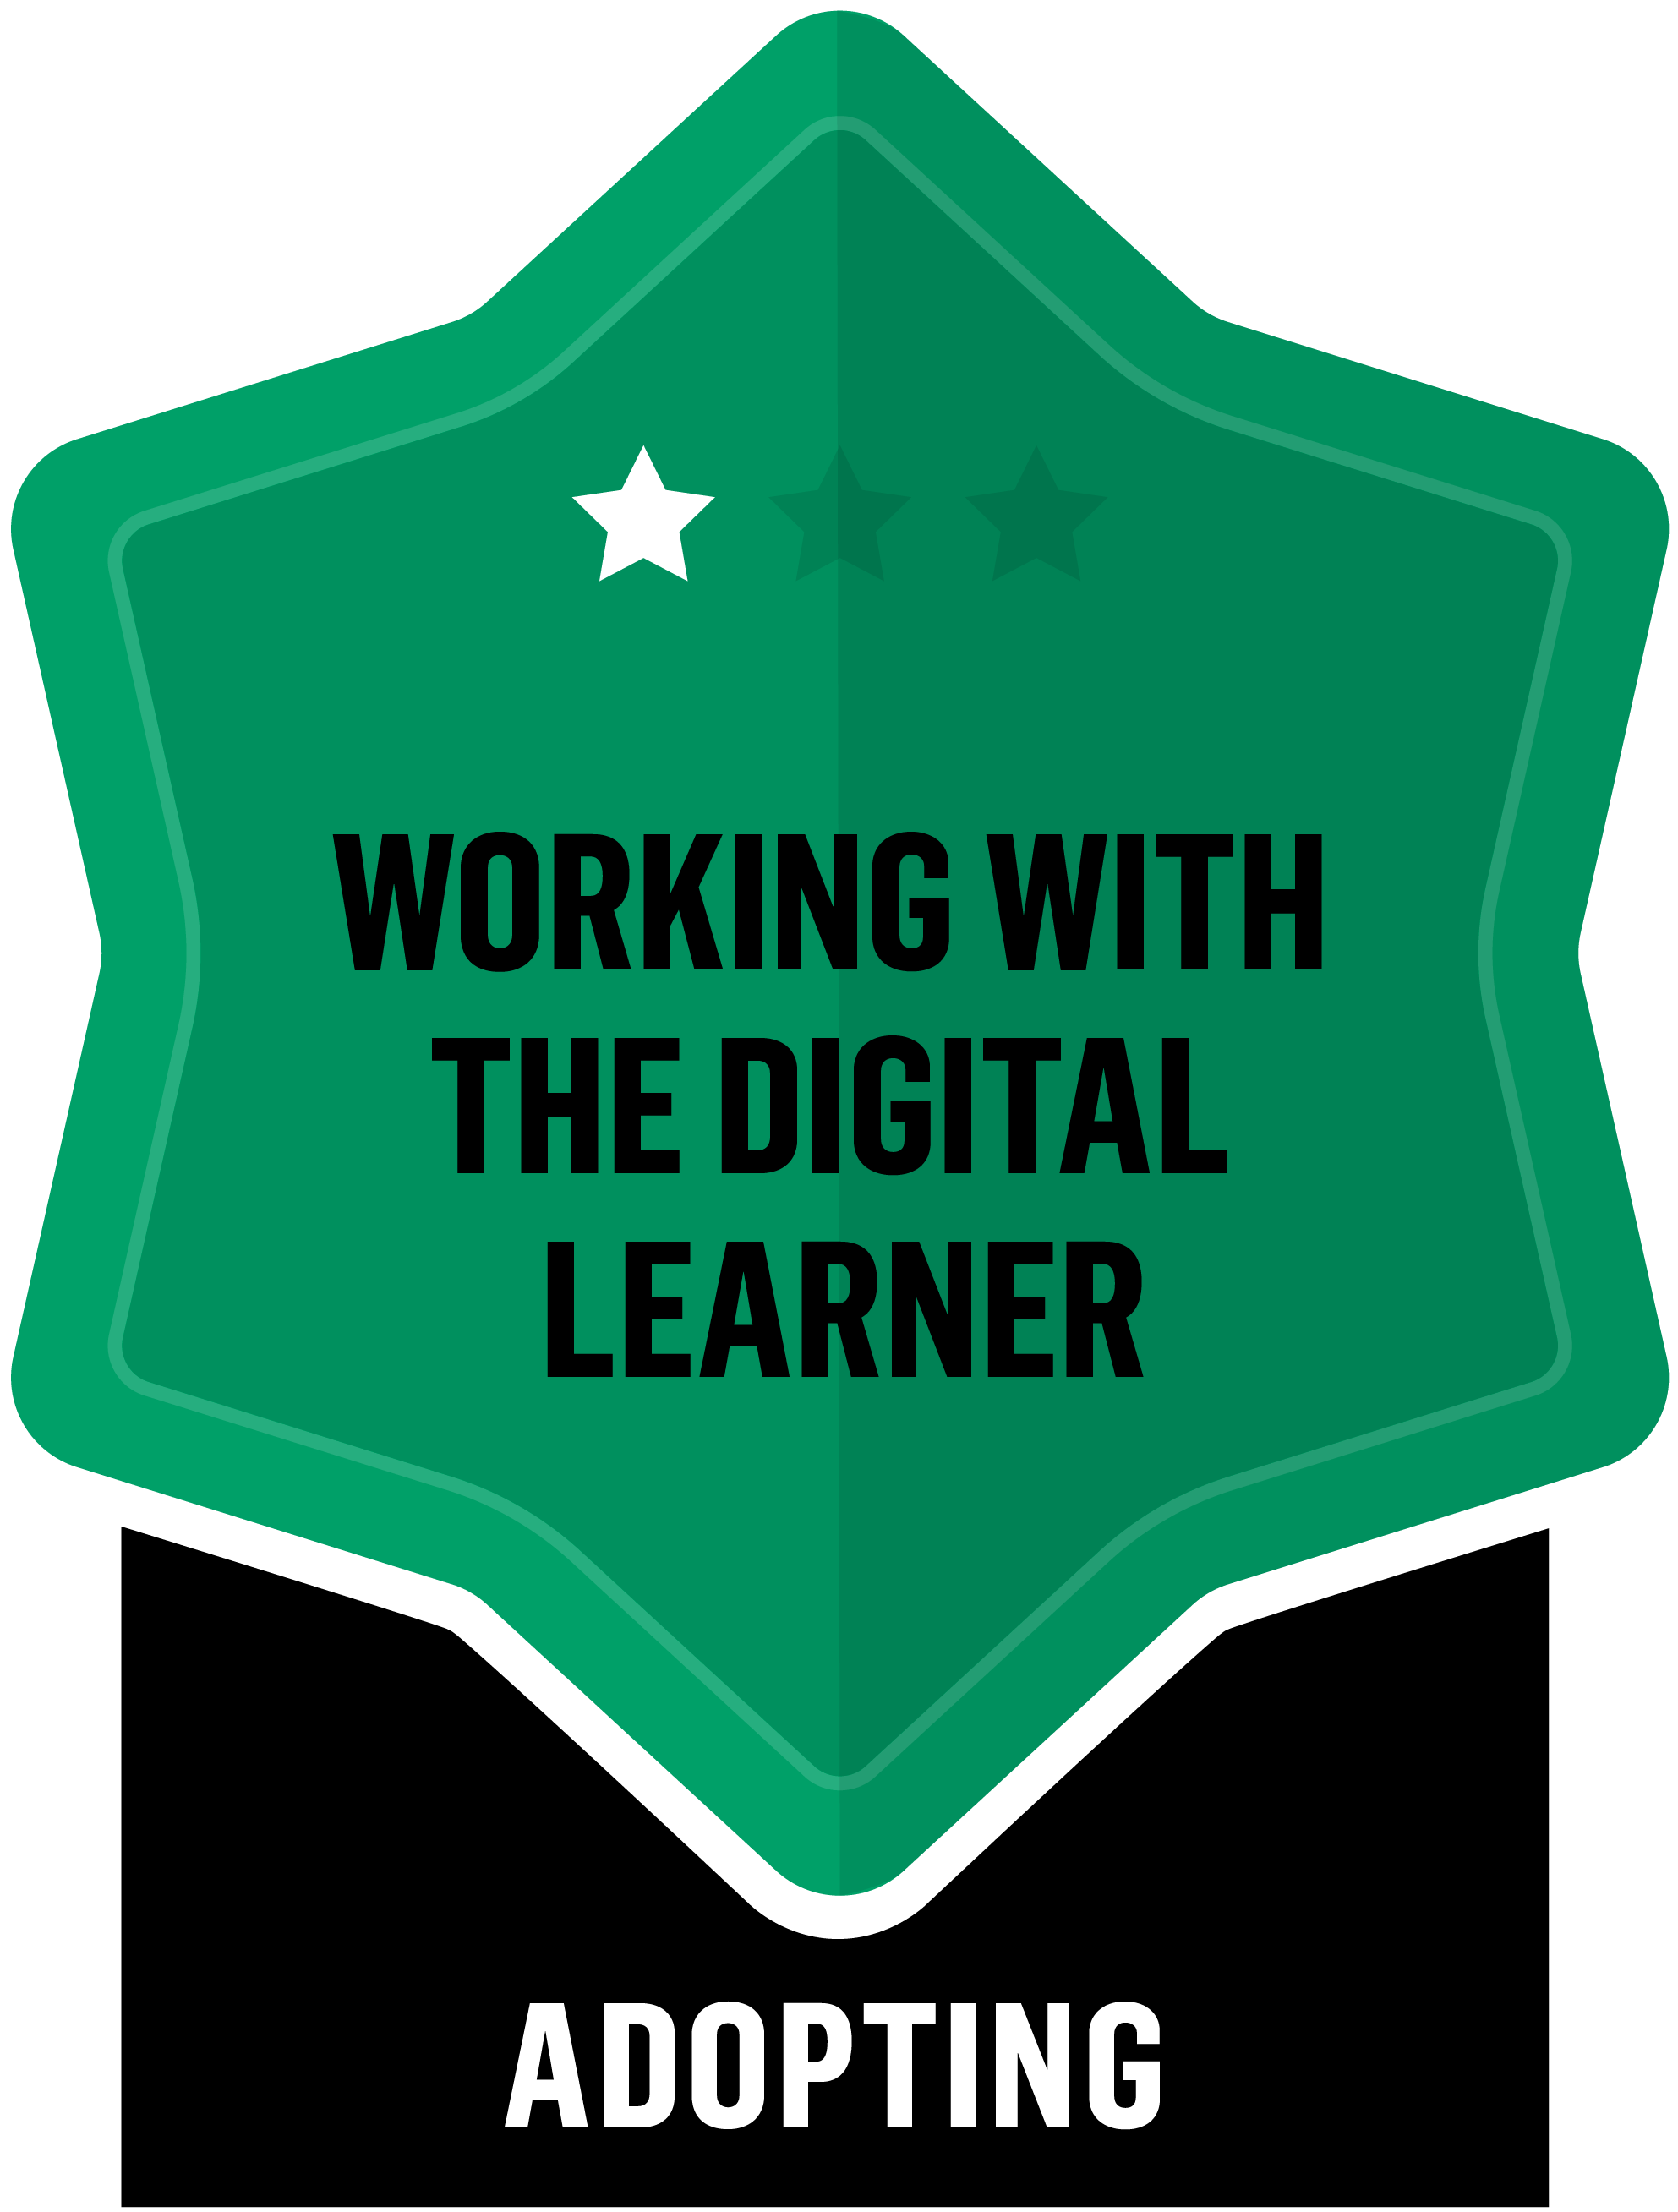 Working with the Digital Learner - Adopting